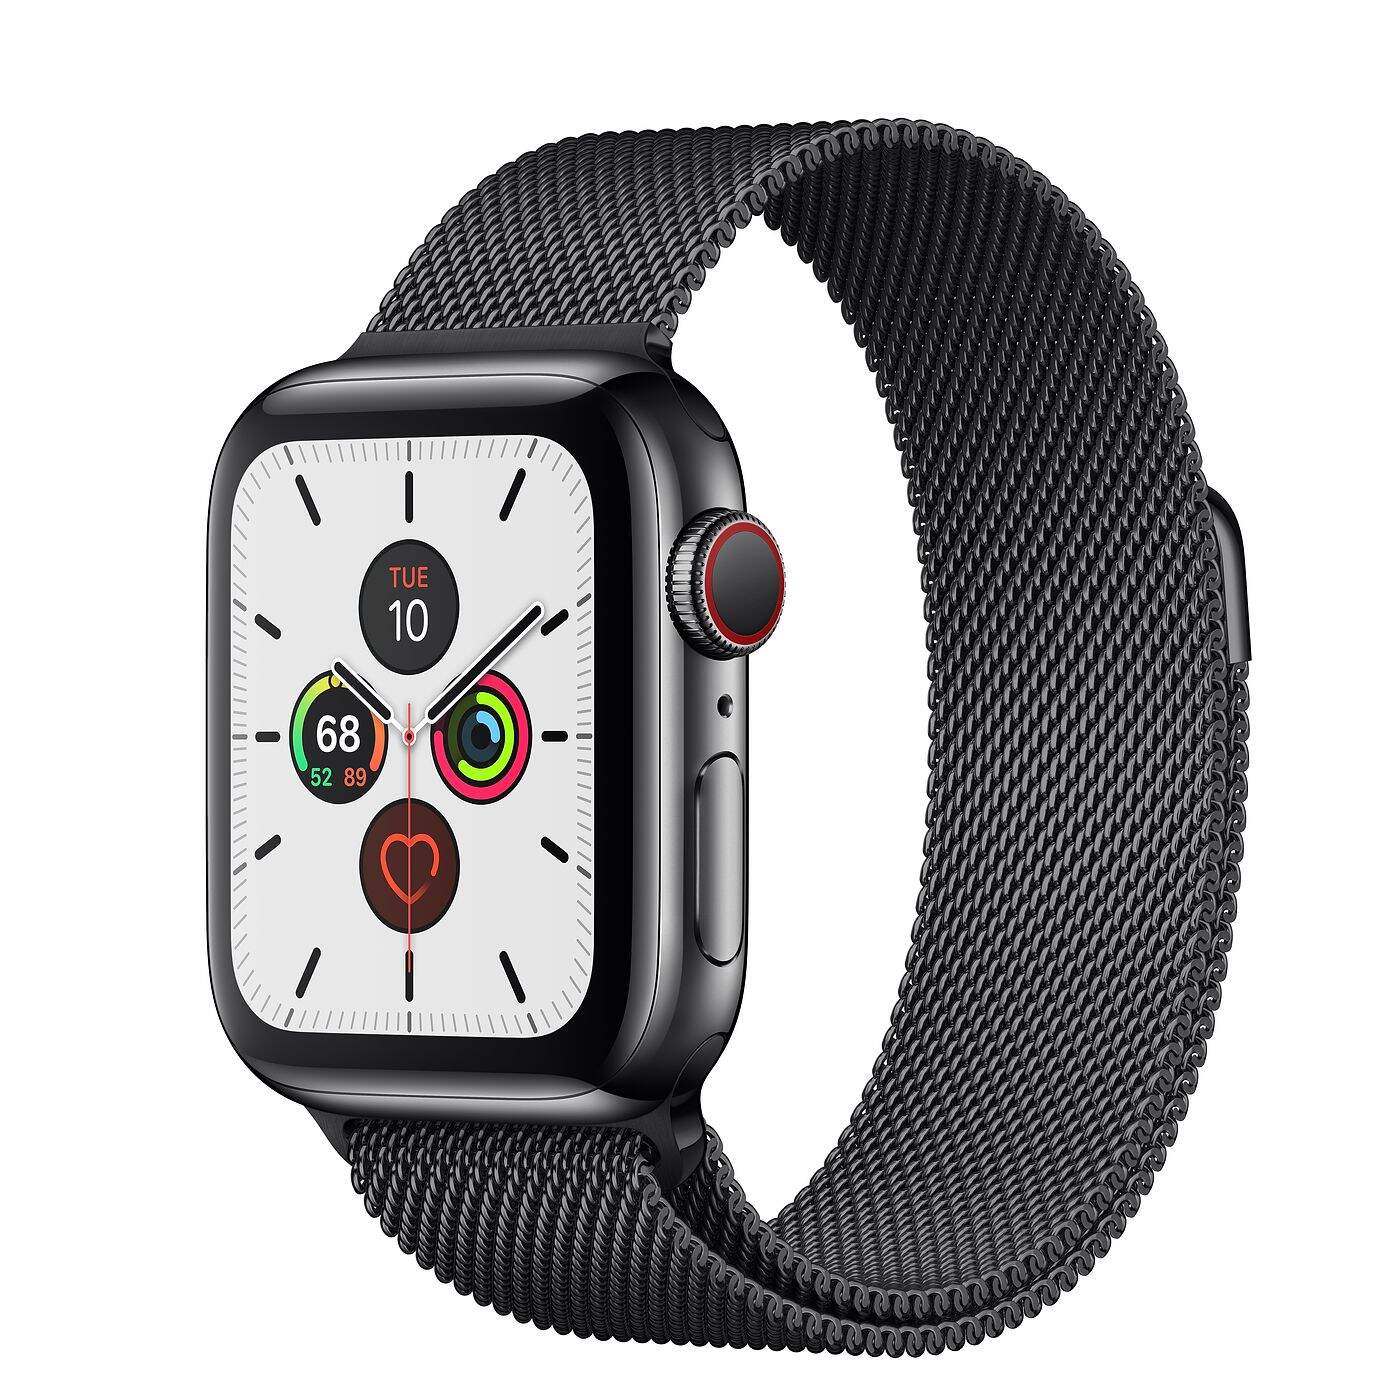 MTU12_VW_34FR+watch-40-stainless-spacegray-cell-5s_VW_34FR_WF_CO.jpeg